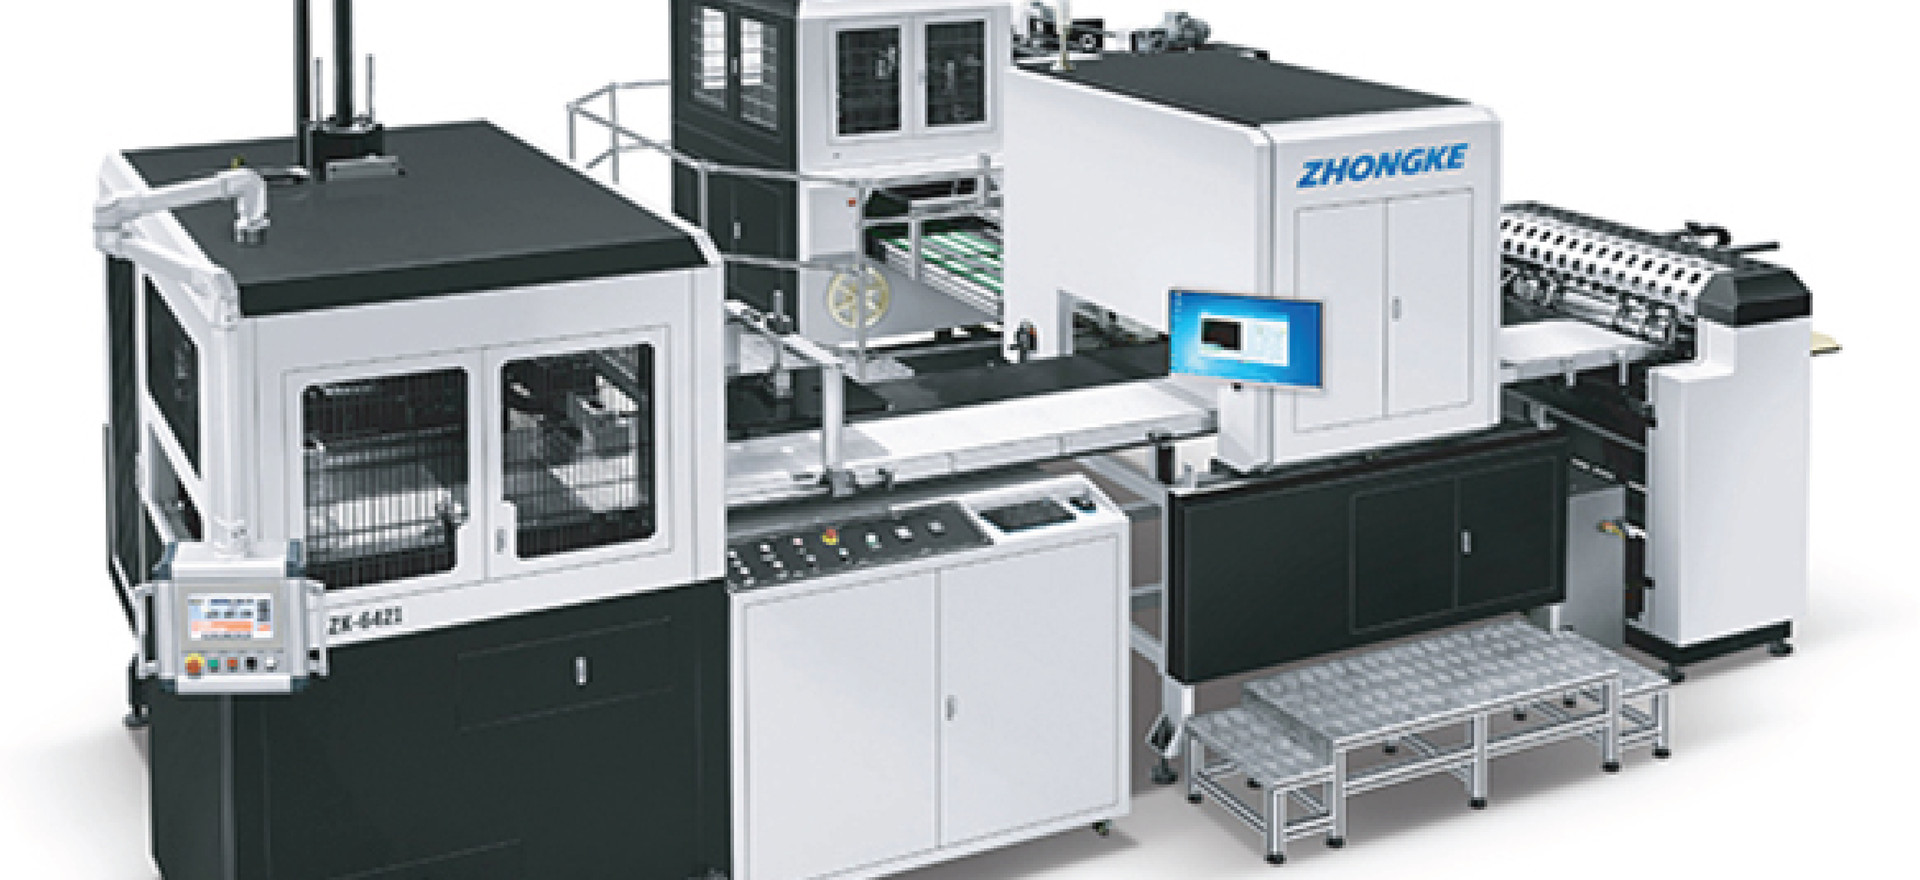 STATE OF THE ART RIGID BOX MAKING MACHINE - ZK 6421